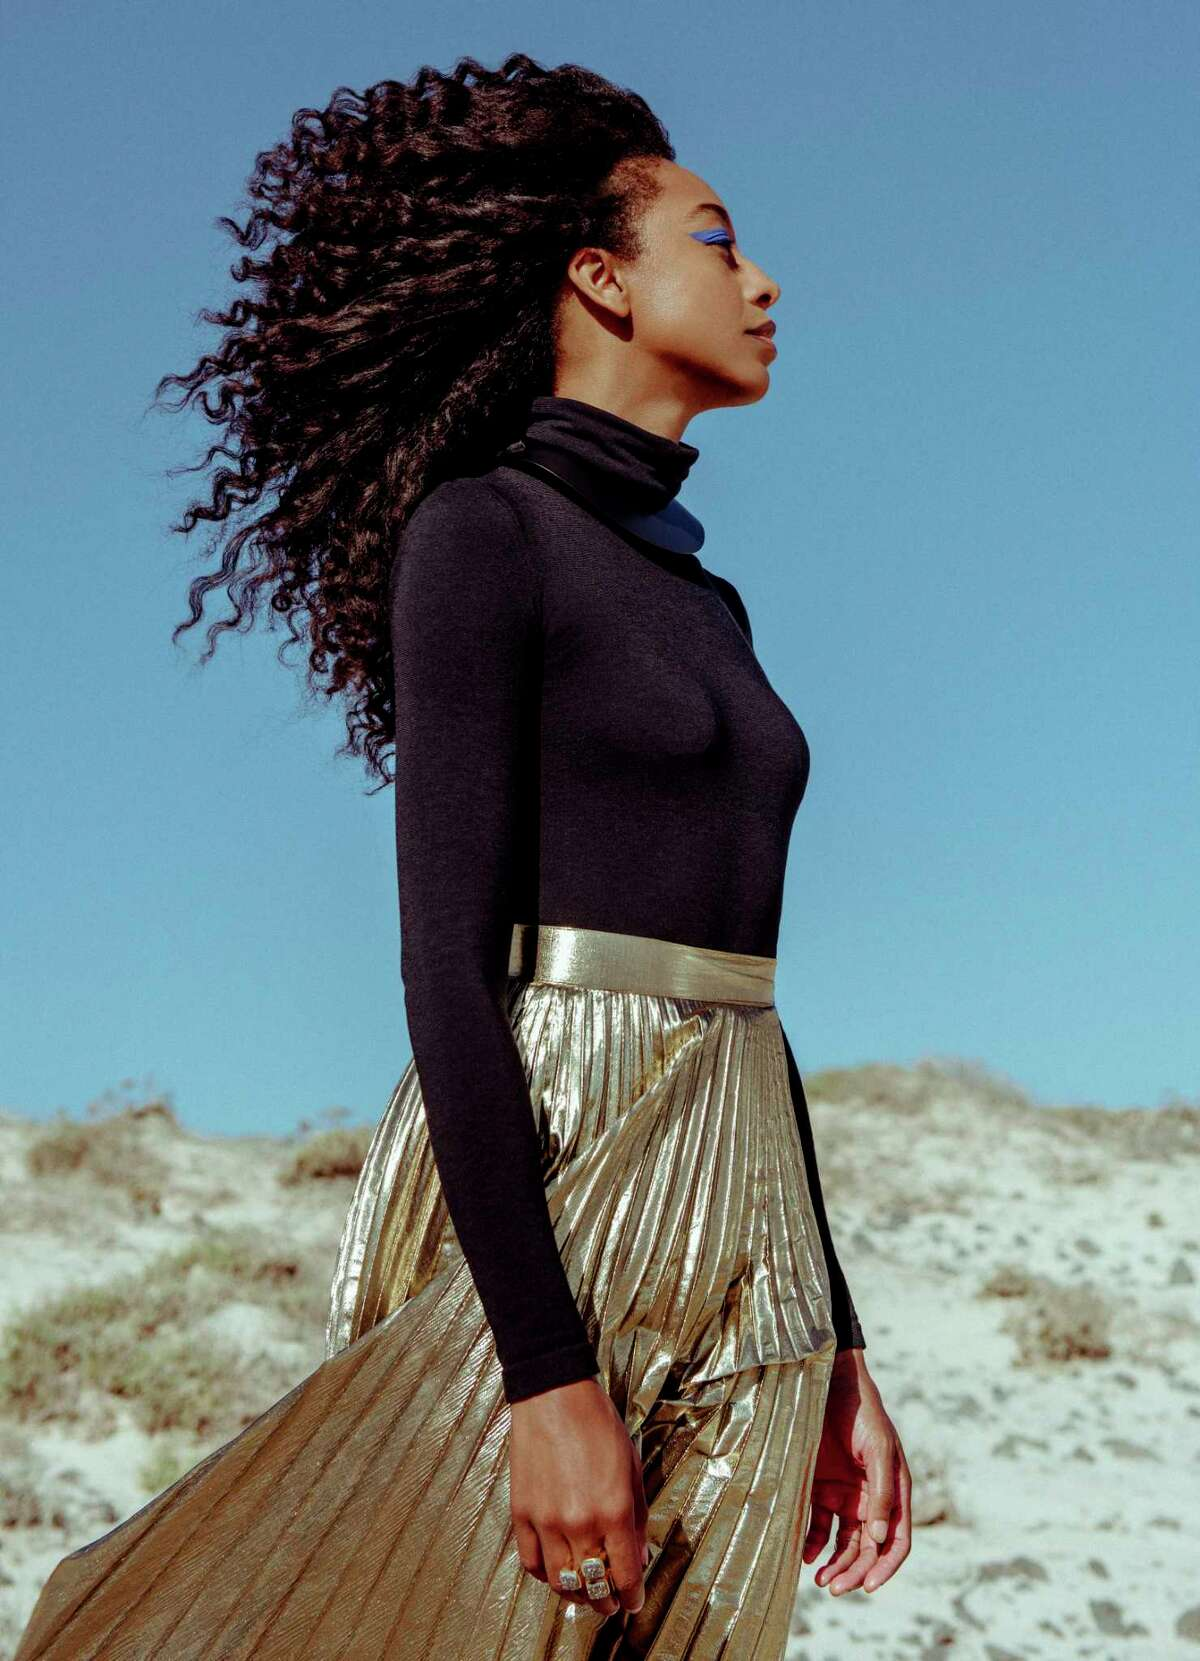 Corinne Bailey Rae will be performing at the Ridgefield Playhouse on Aug. 3.